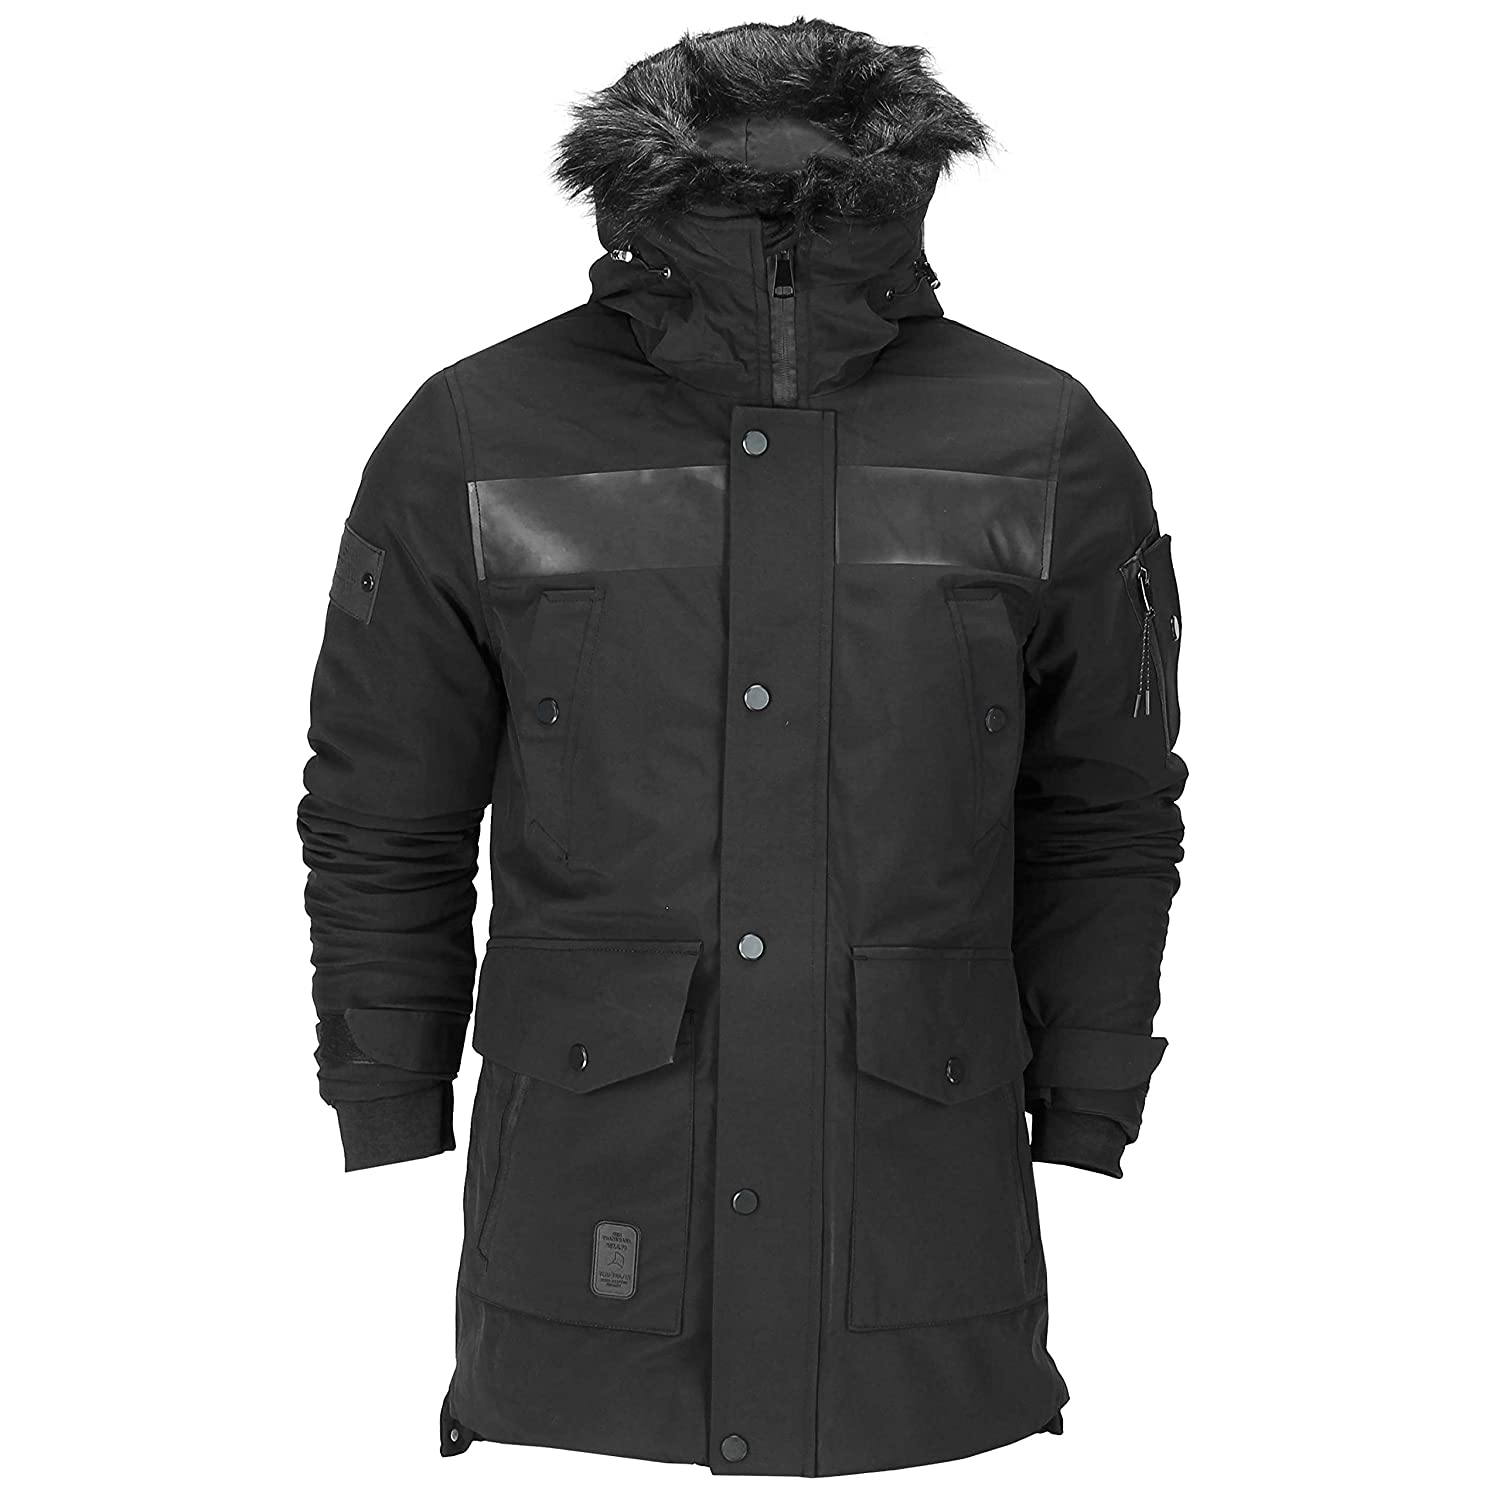 discount coupon buying new how to find Mens Heavy Weight Black Fur Trimmed Hooded Parka Jacket Padded Winter Warm  Waterproof Coat